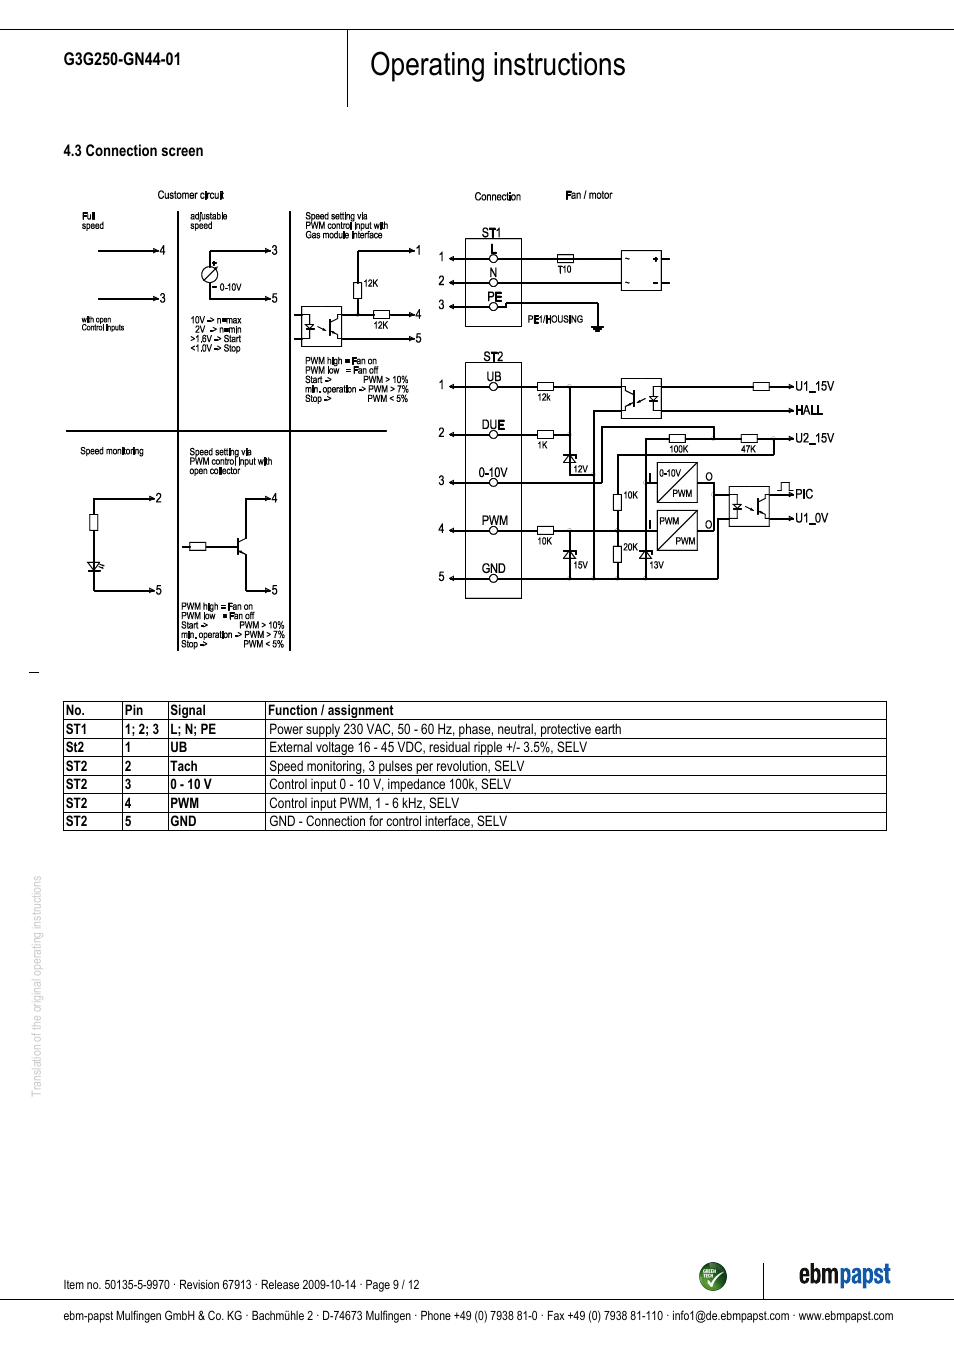 Operating instructions | ebm-papst G3G250-GN44-01 User Manual | Page 9 / 12